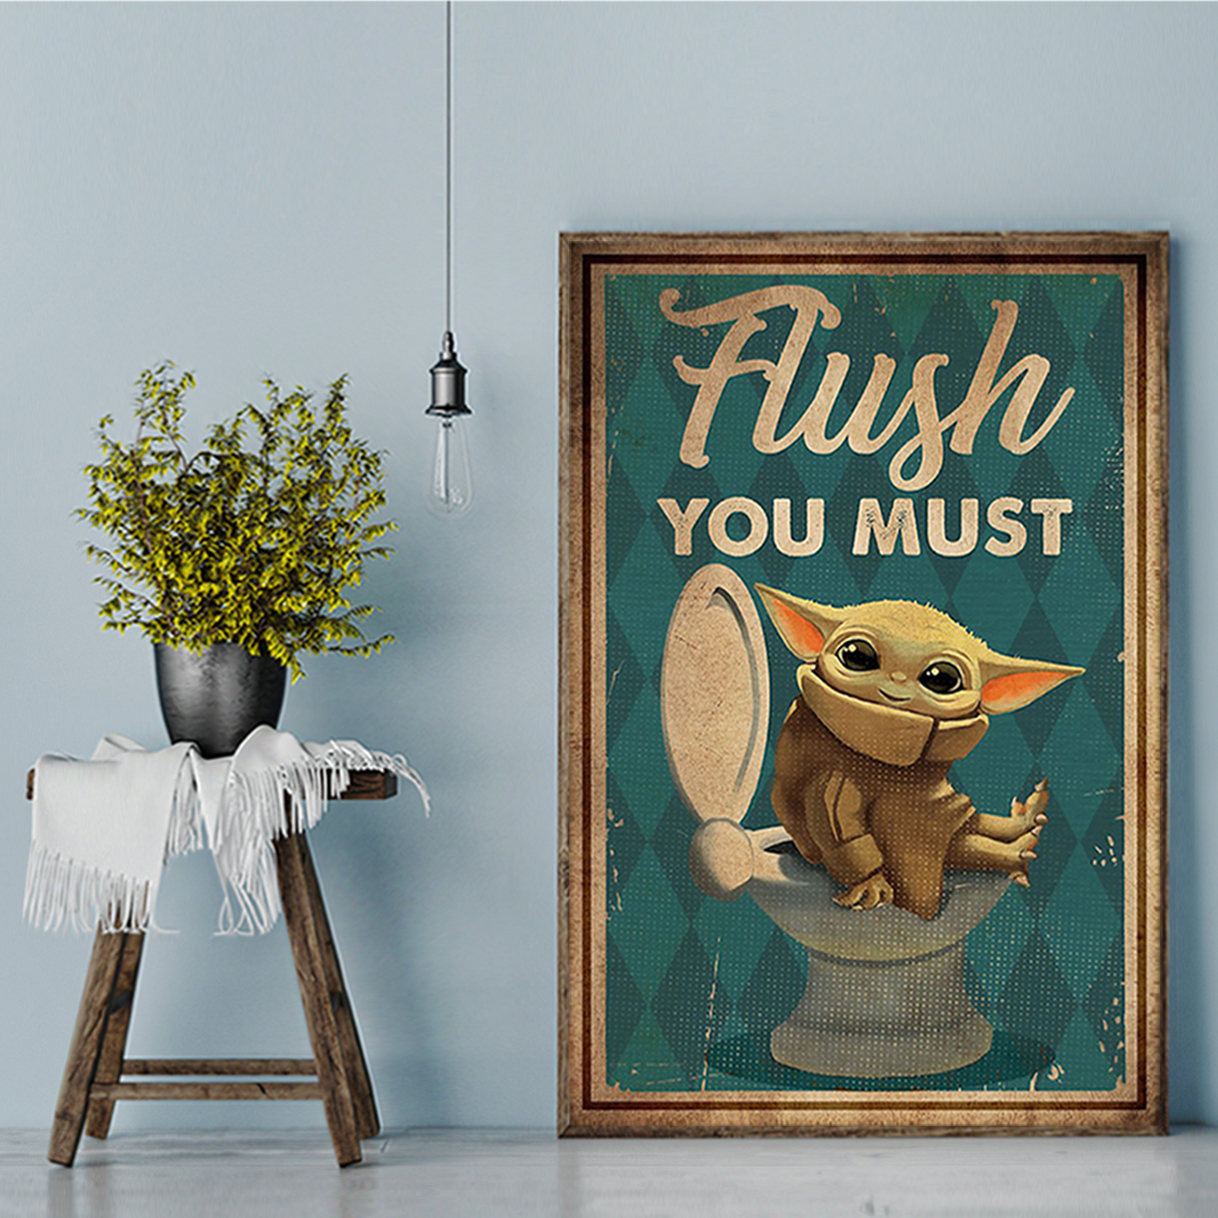 Baby yoda flush you must poster A3